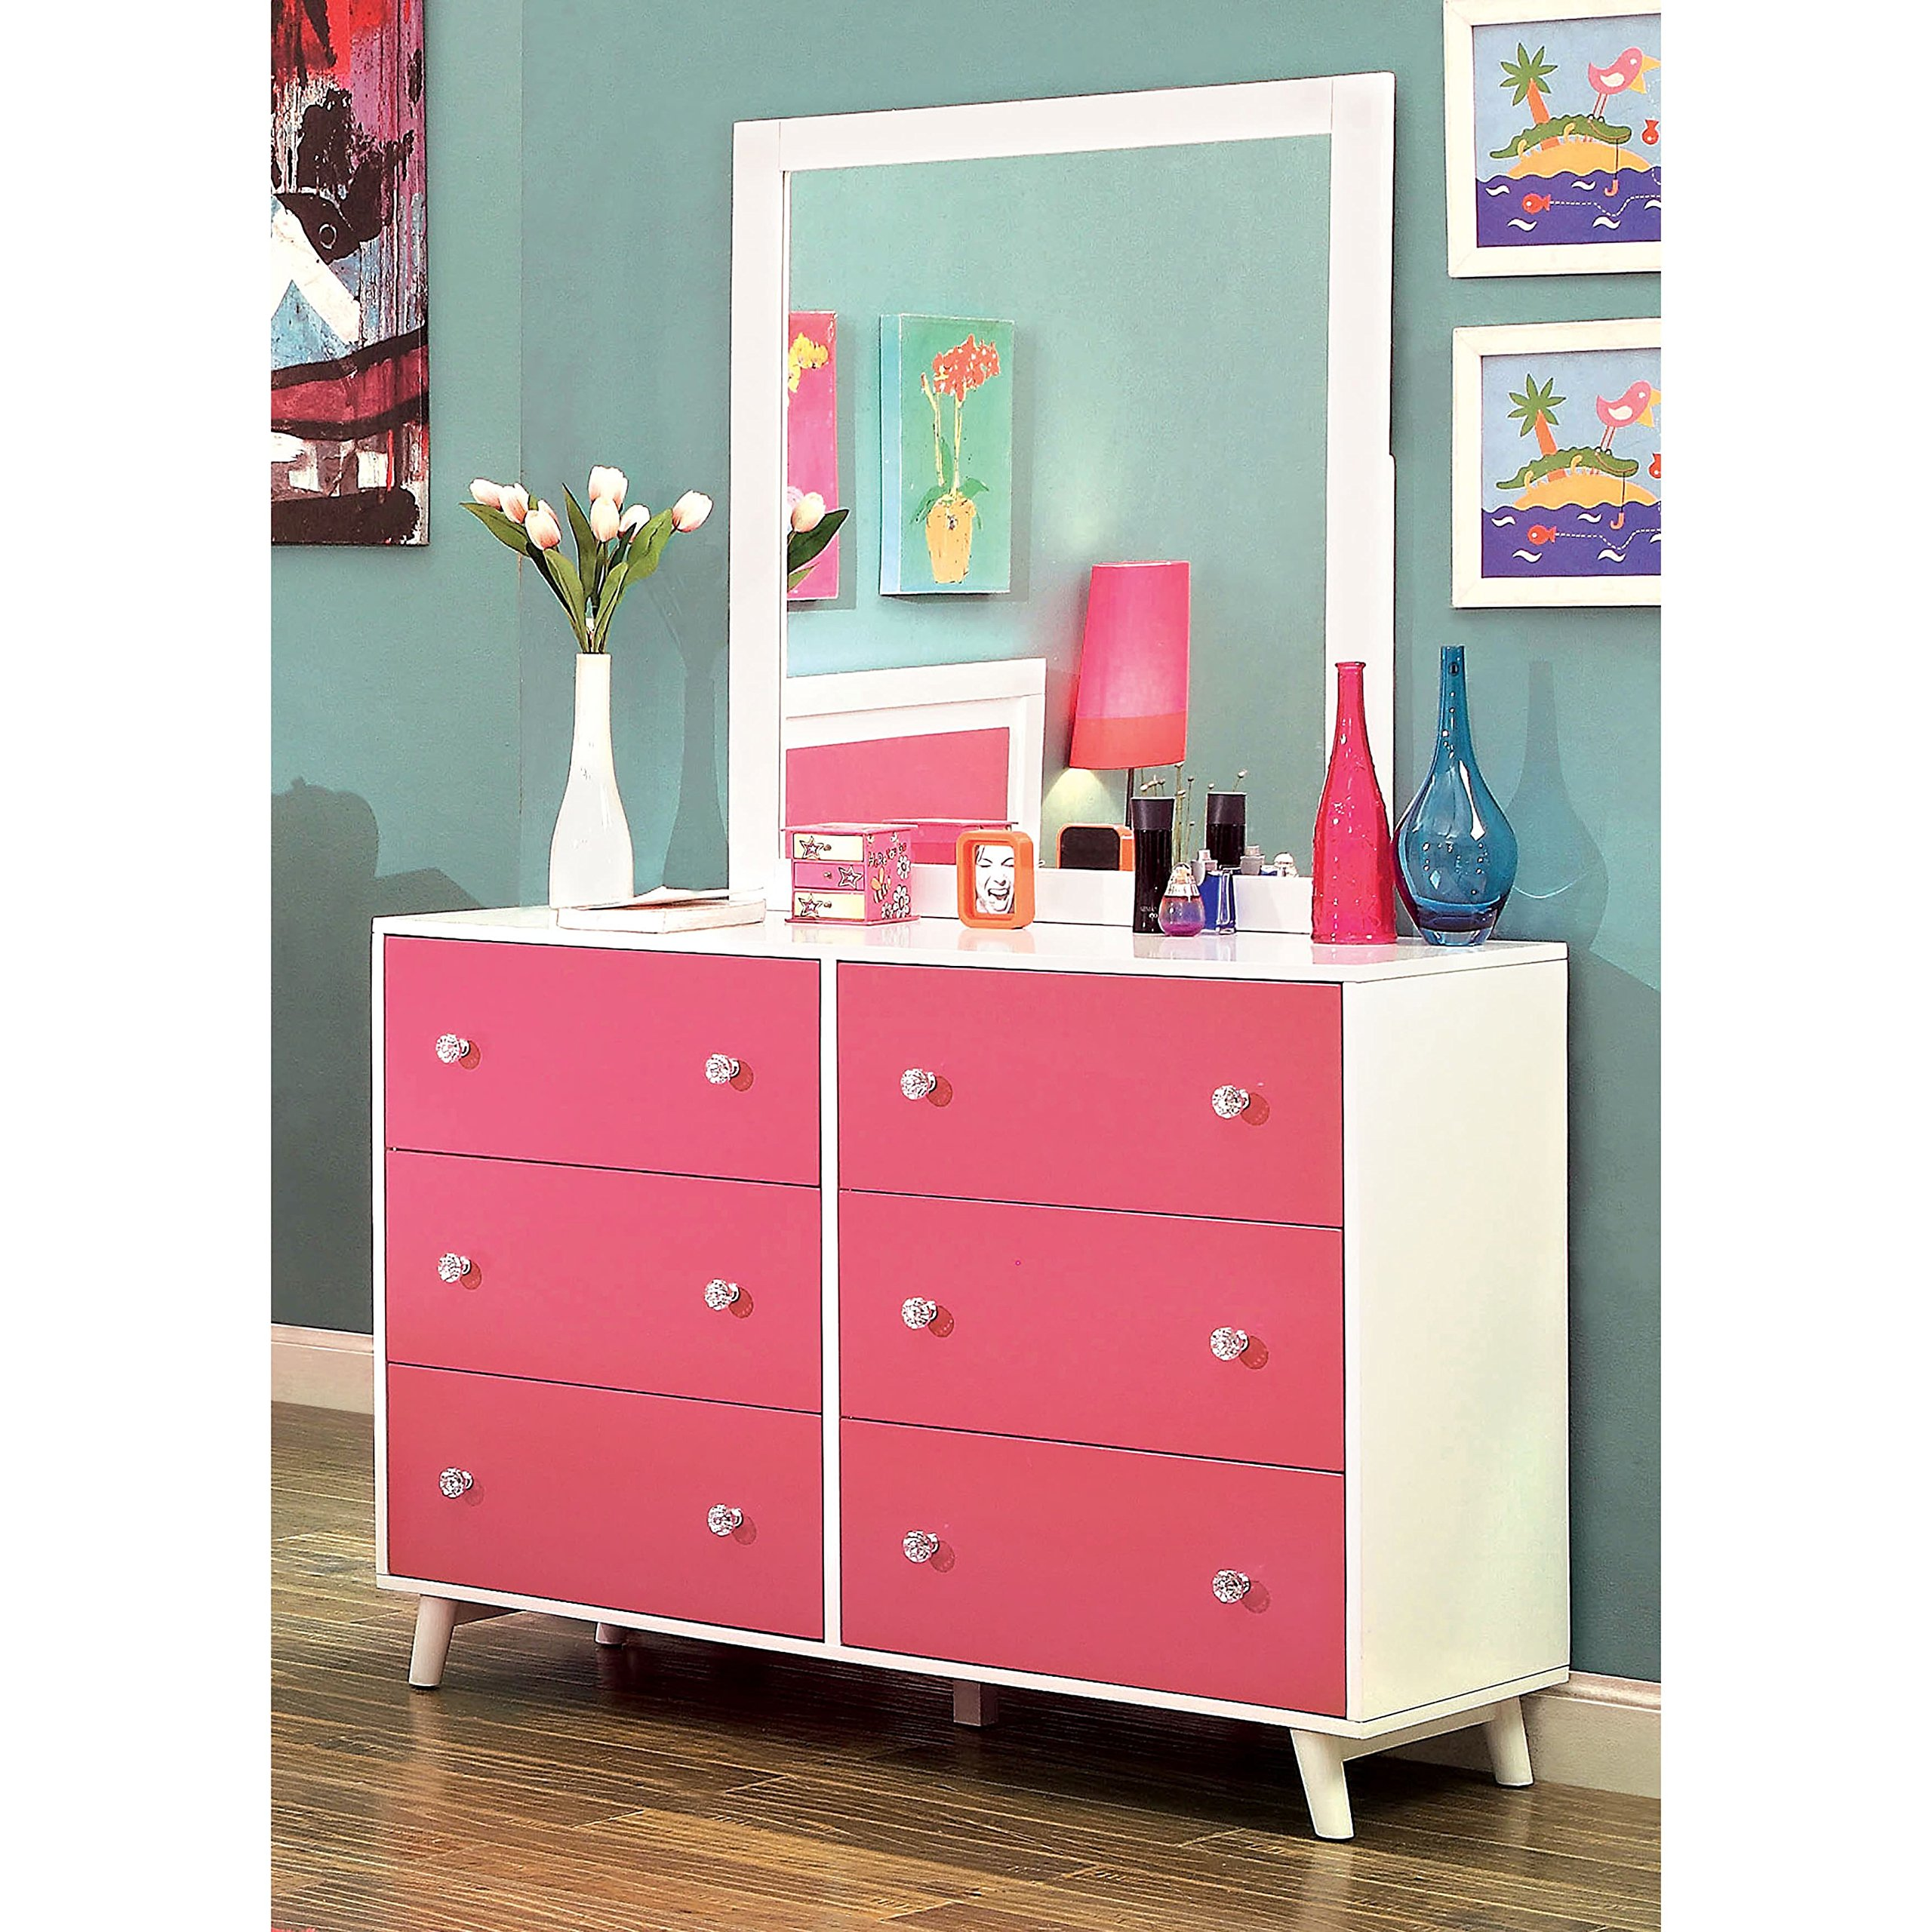 Furniture of America Kacie Modern 2-piece Pink/White Youth Dresser and Mirror Set by Furniture of America